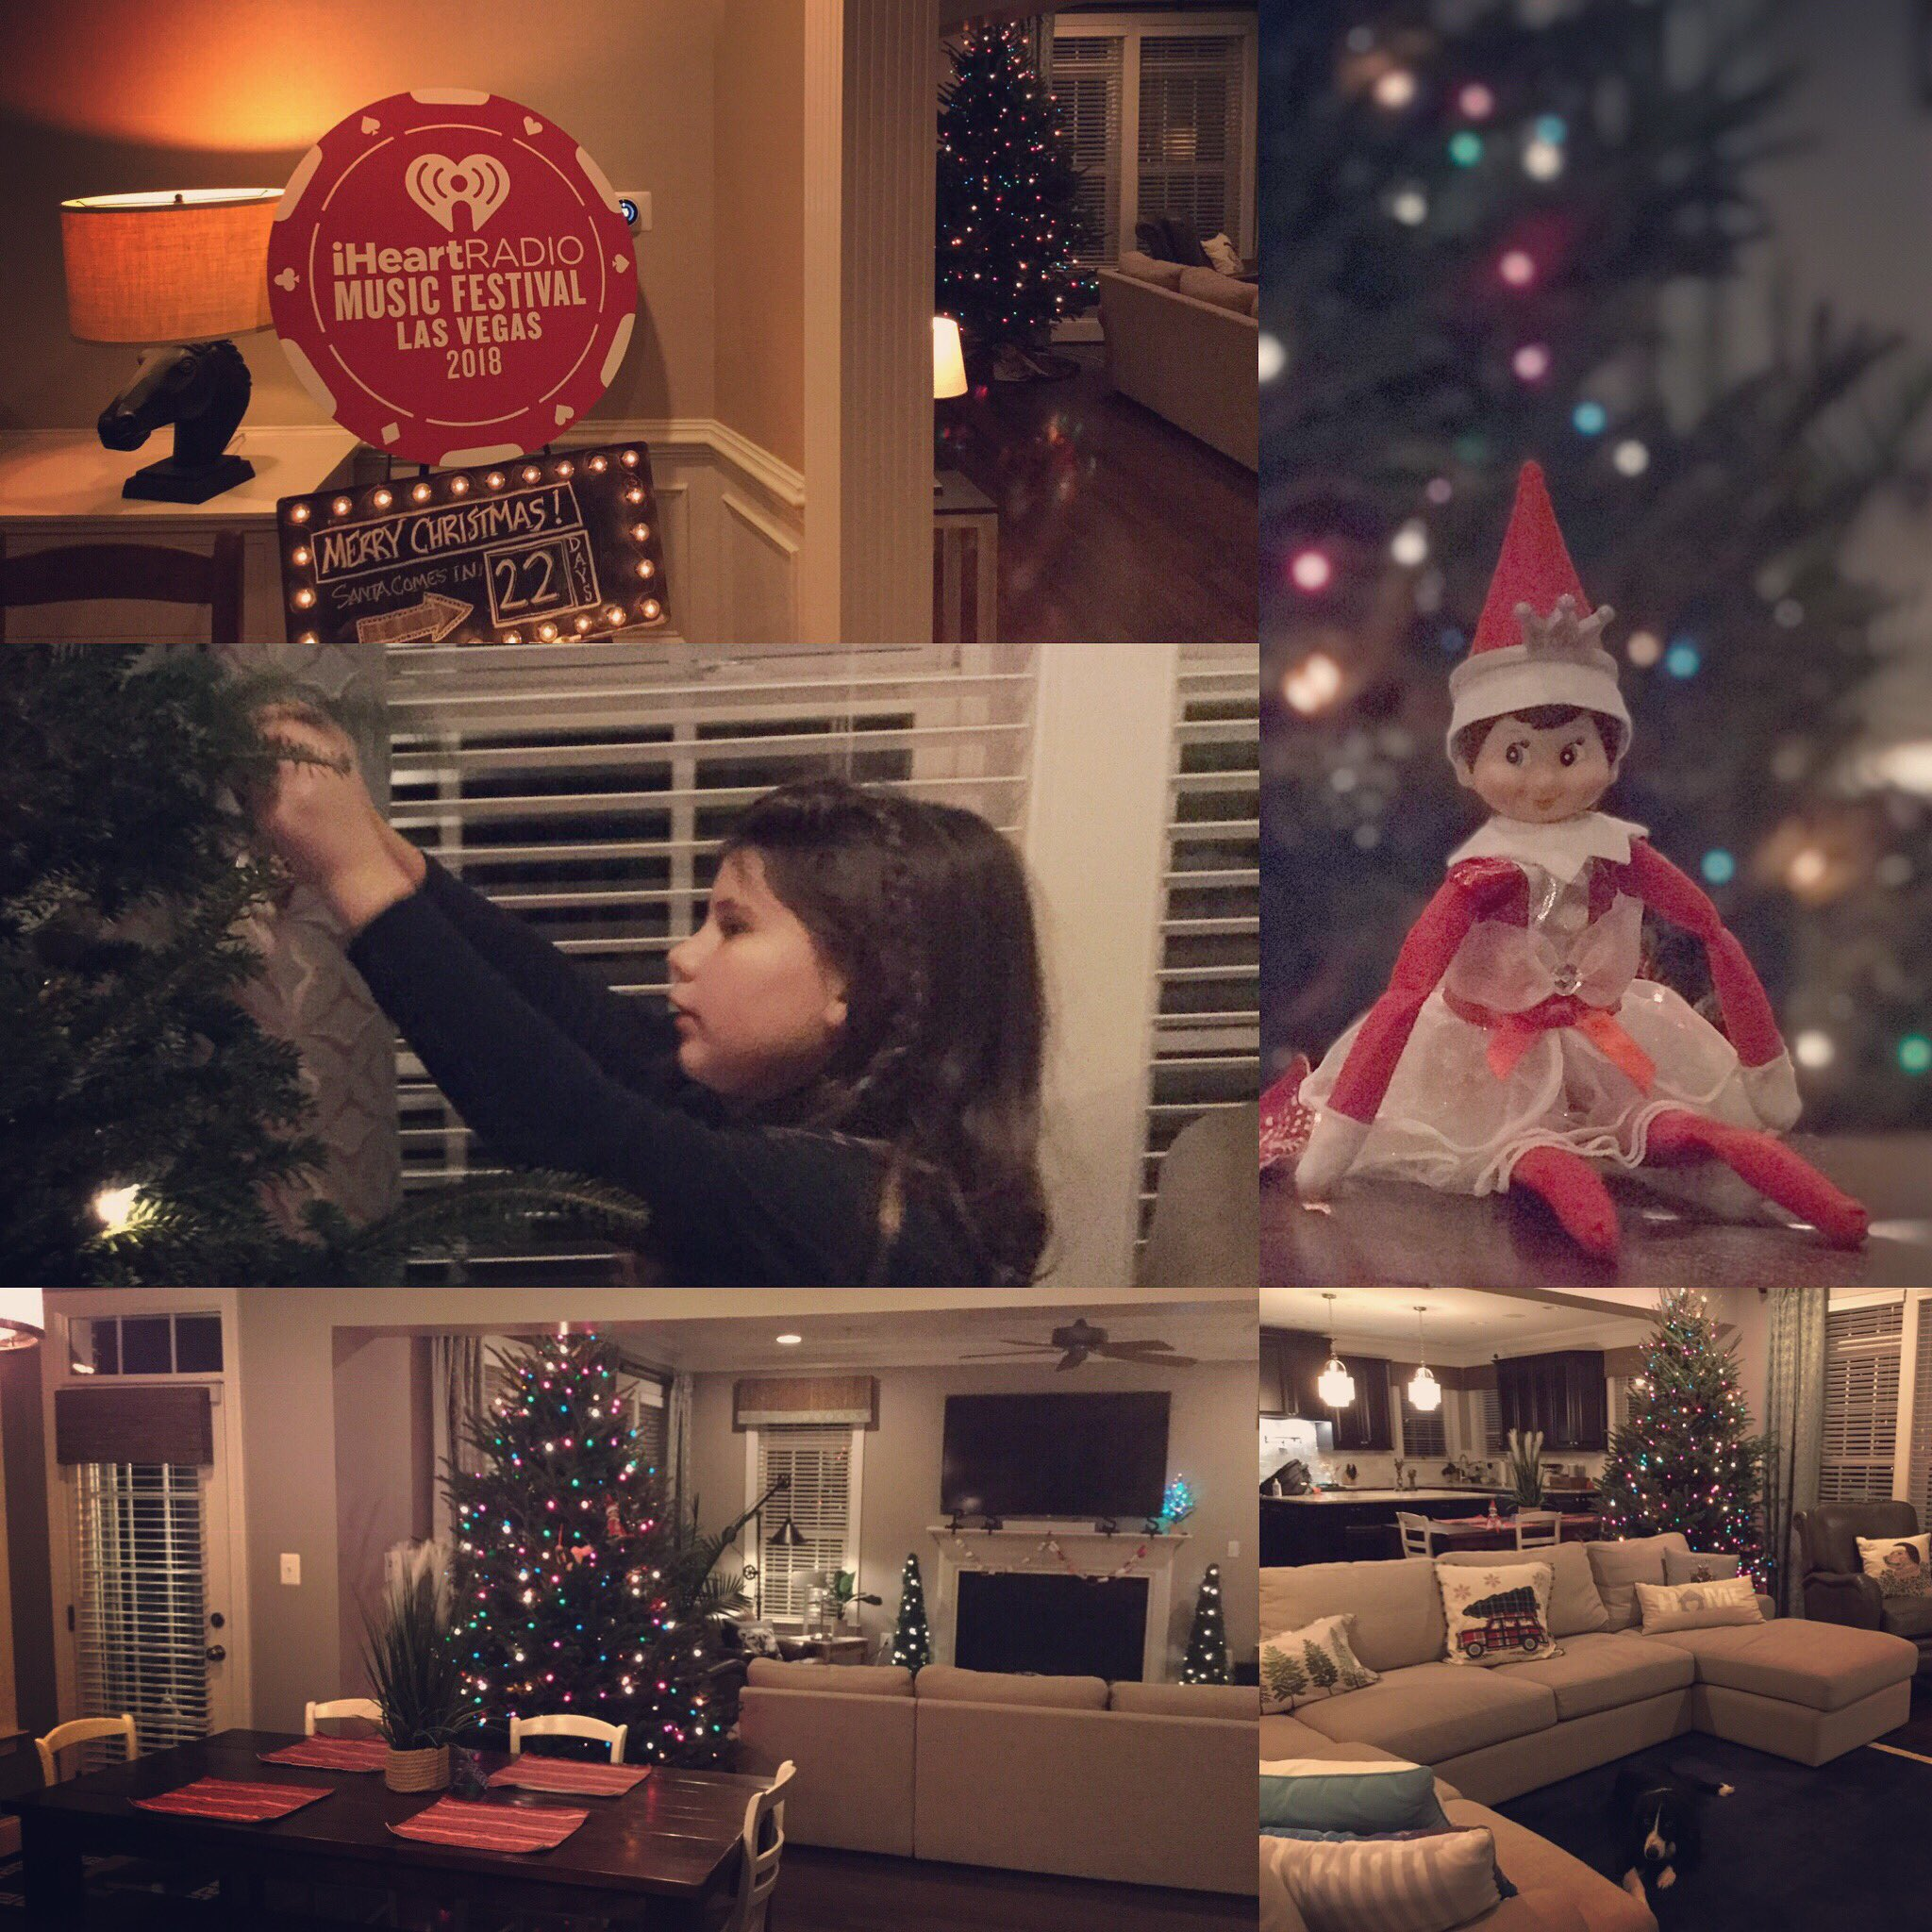 Iheartradio Christmas.Kane On Twitter First Christmas In Our New House The